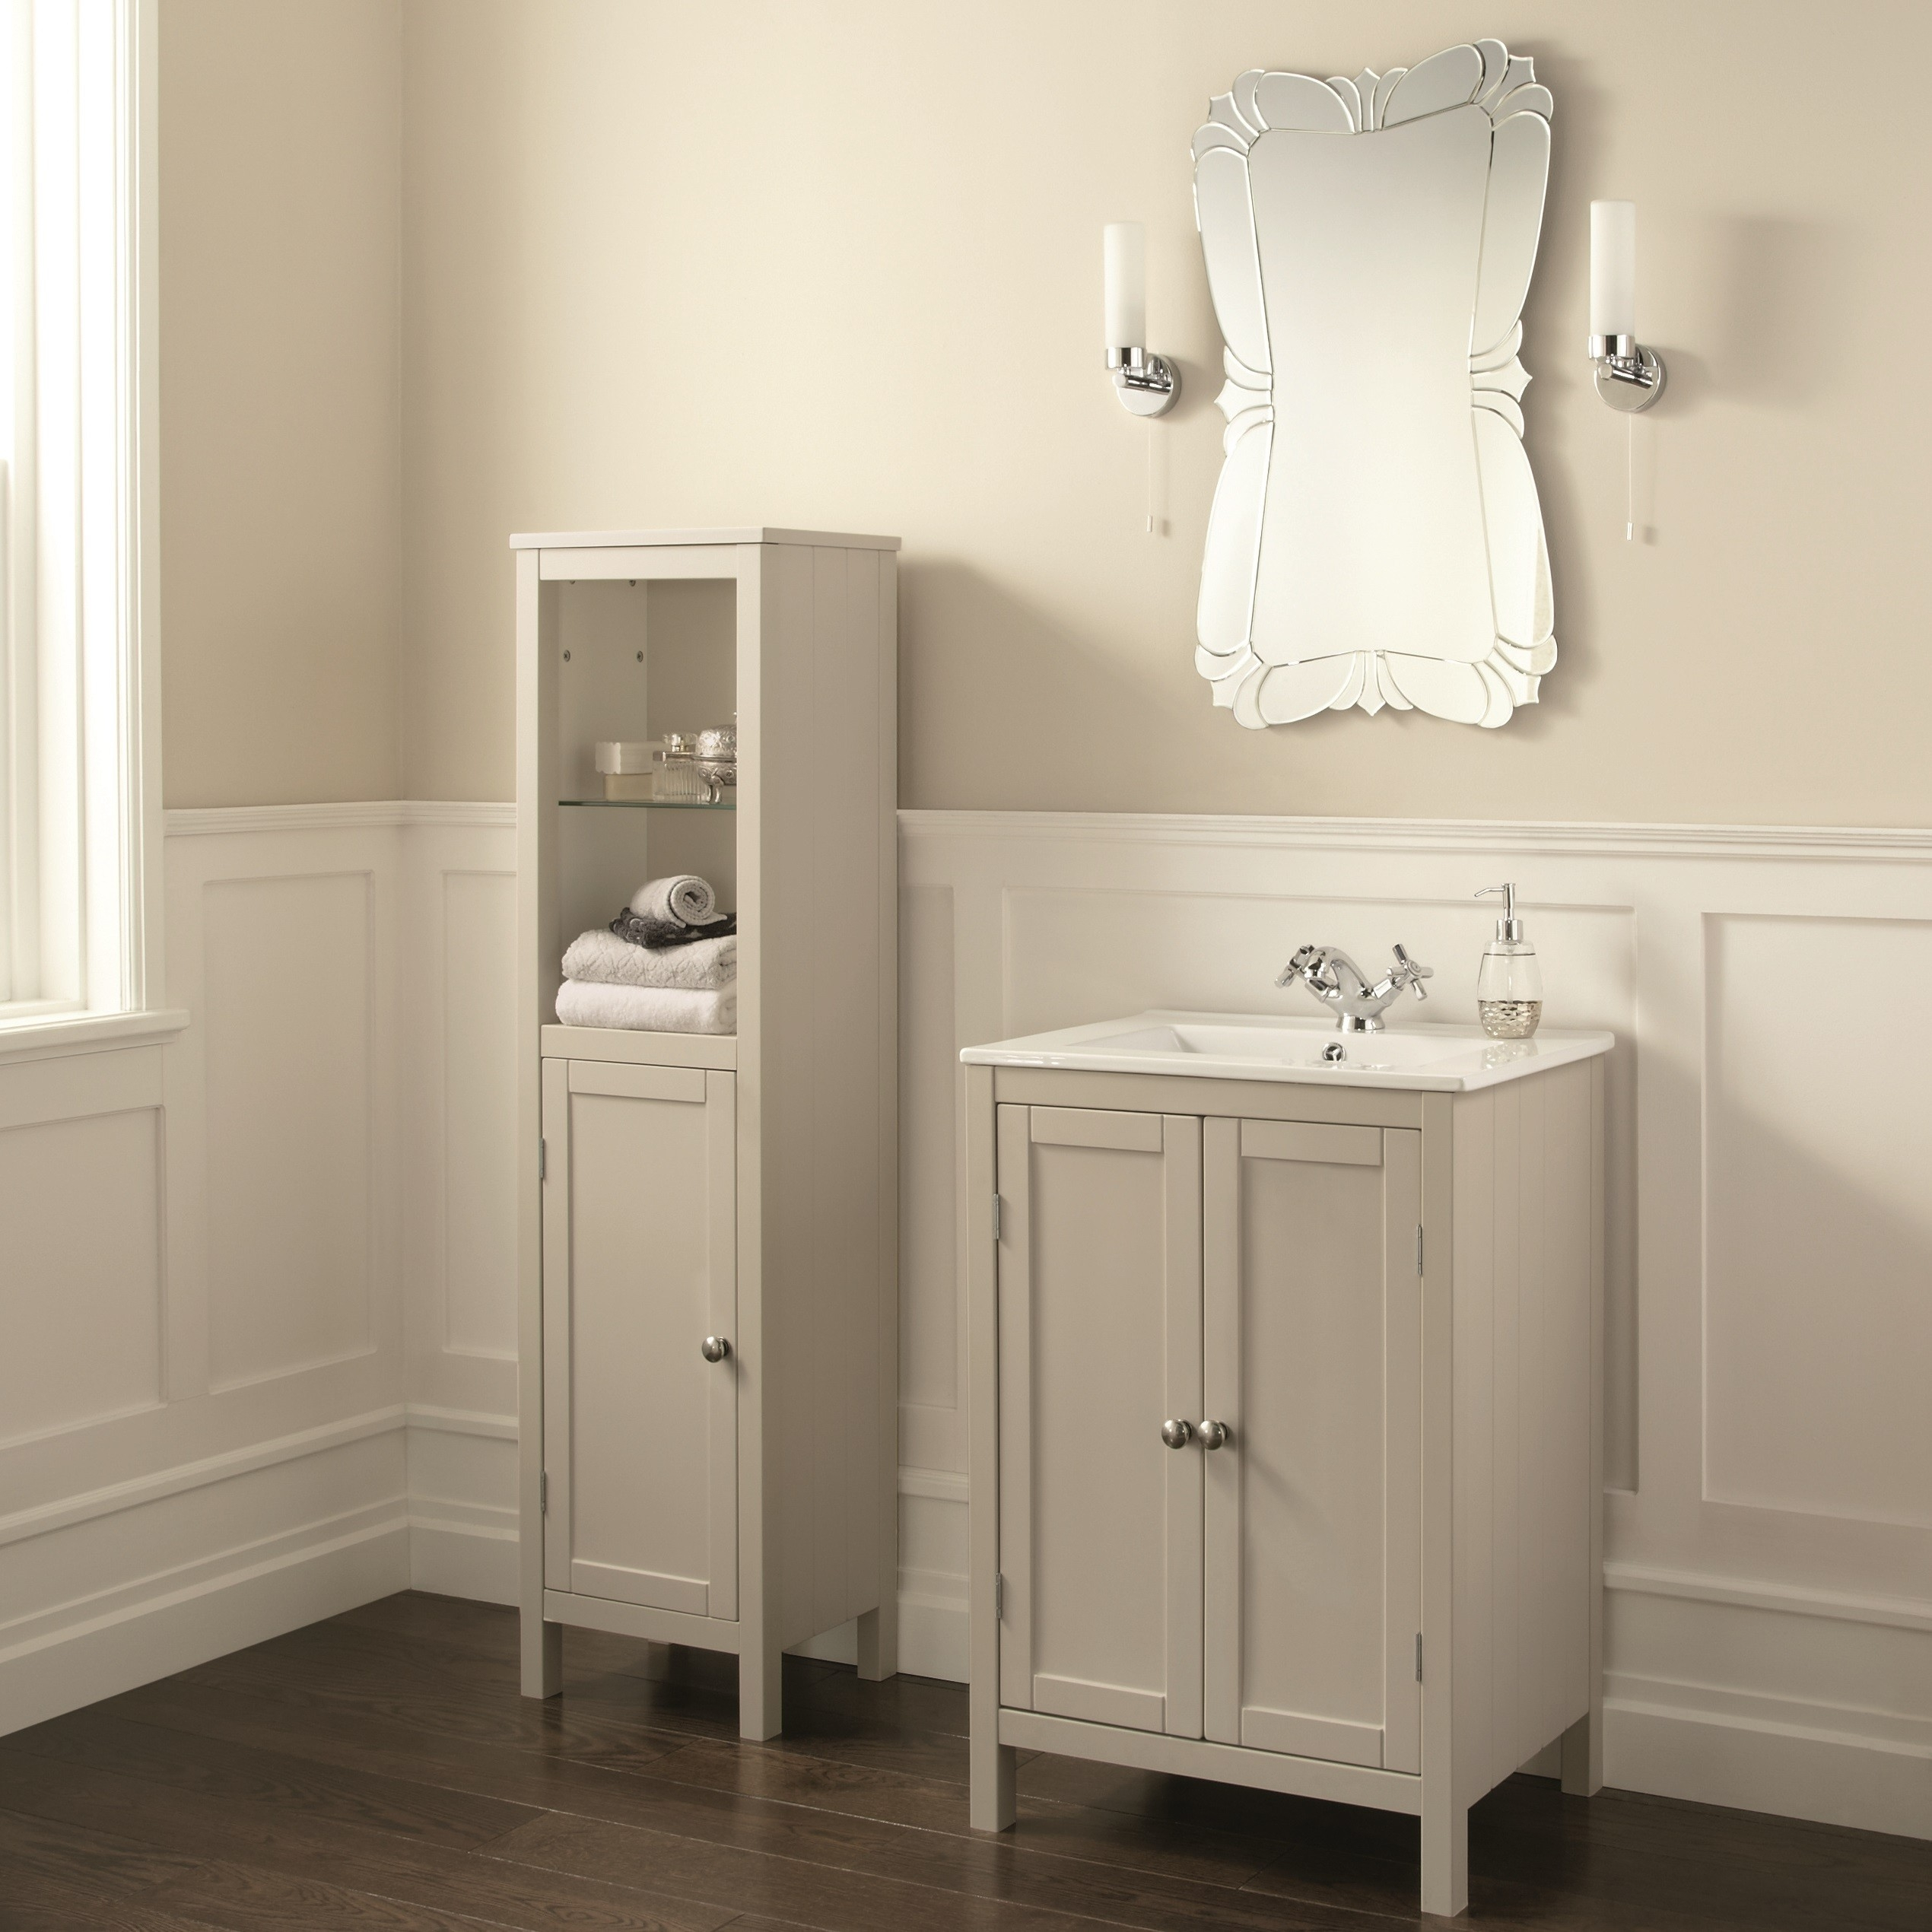 Bathroom Vanity Units B&Q